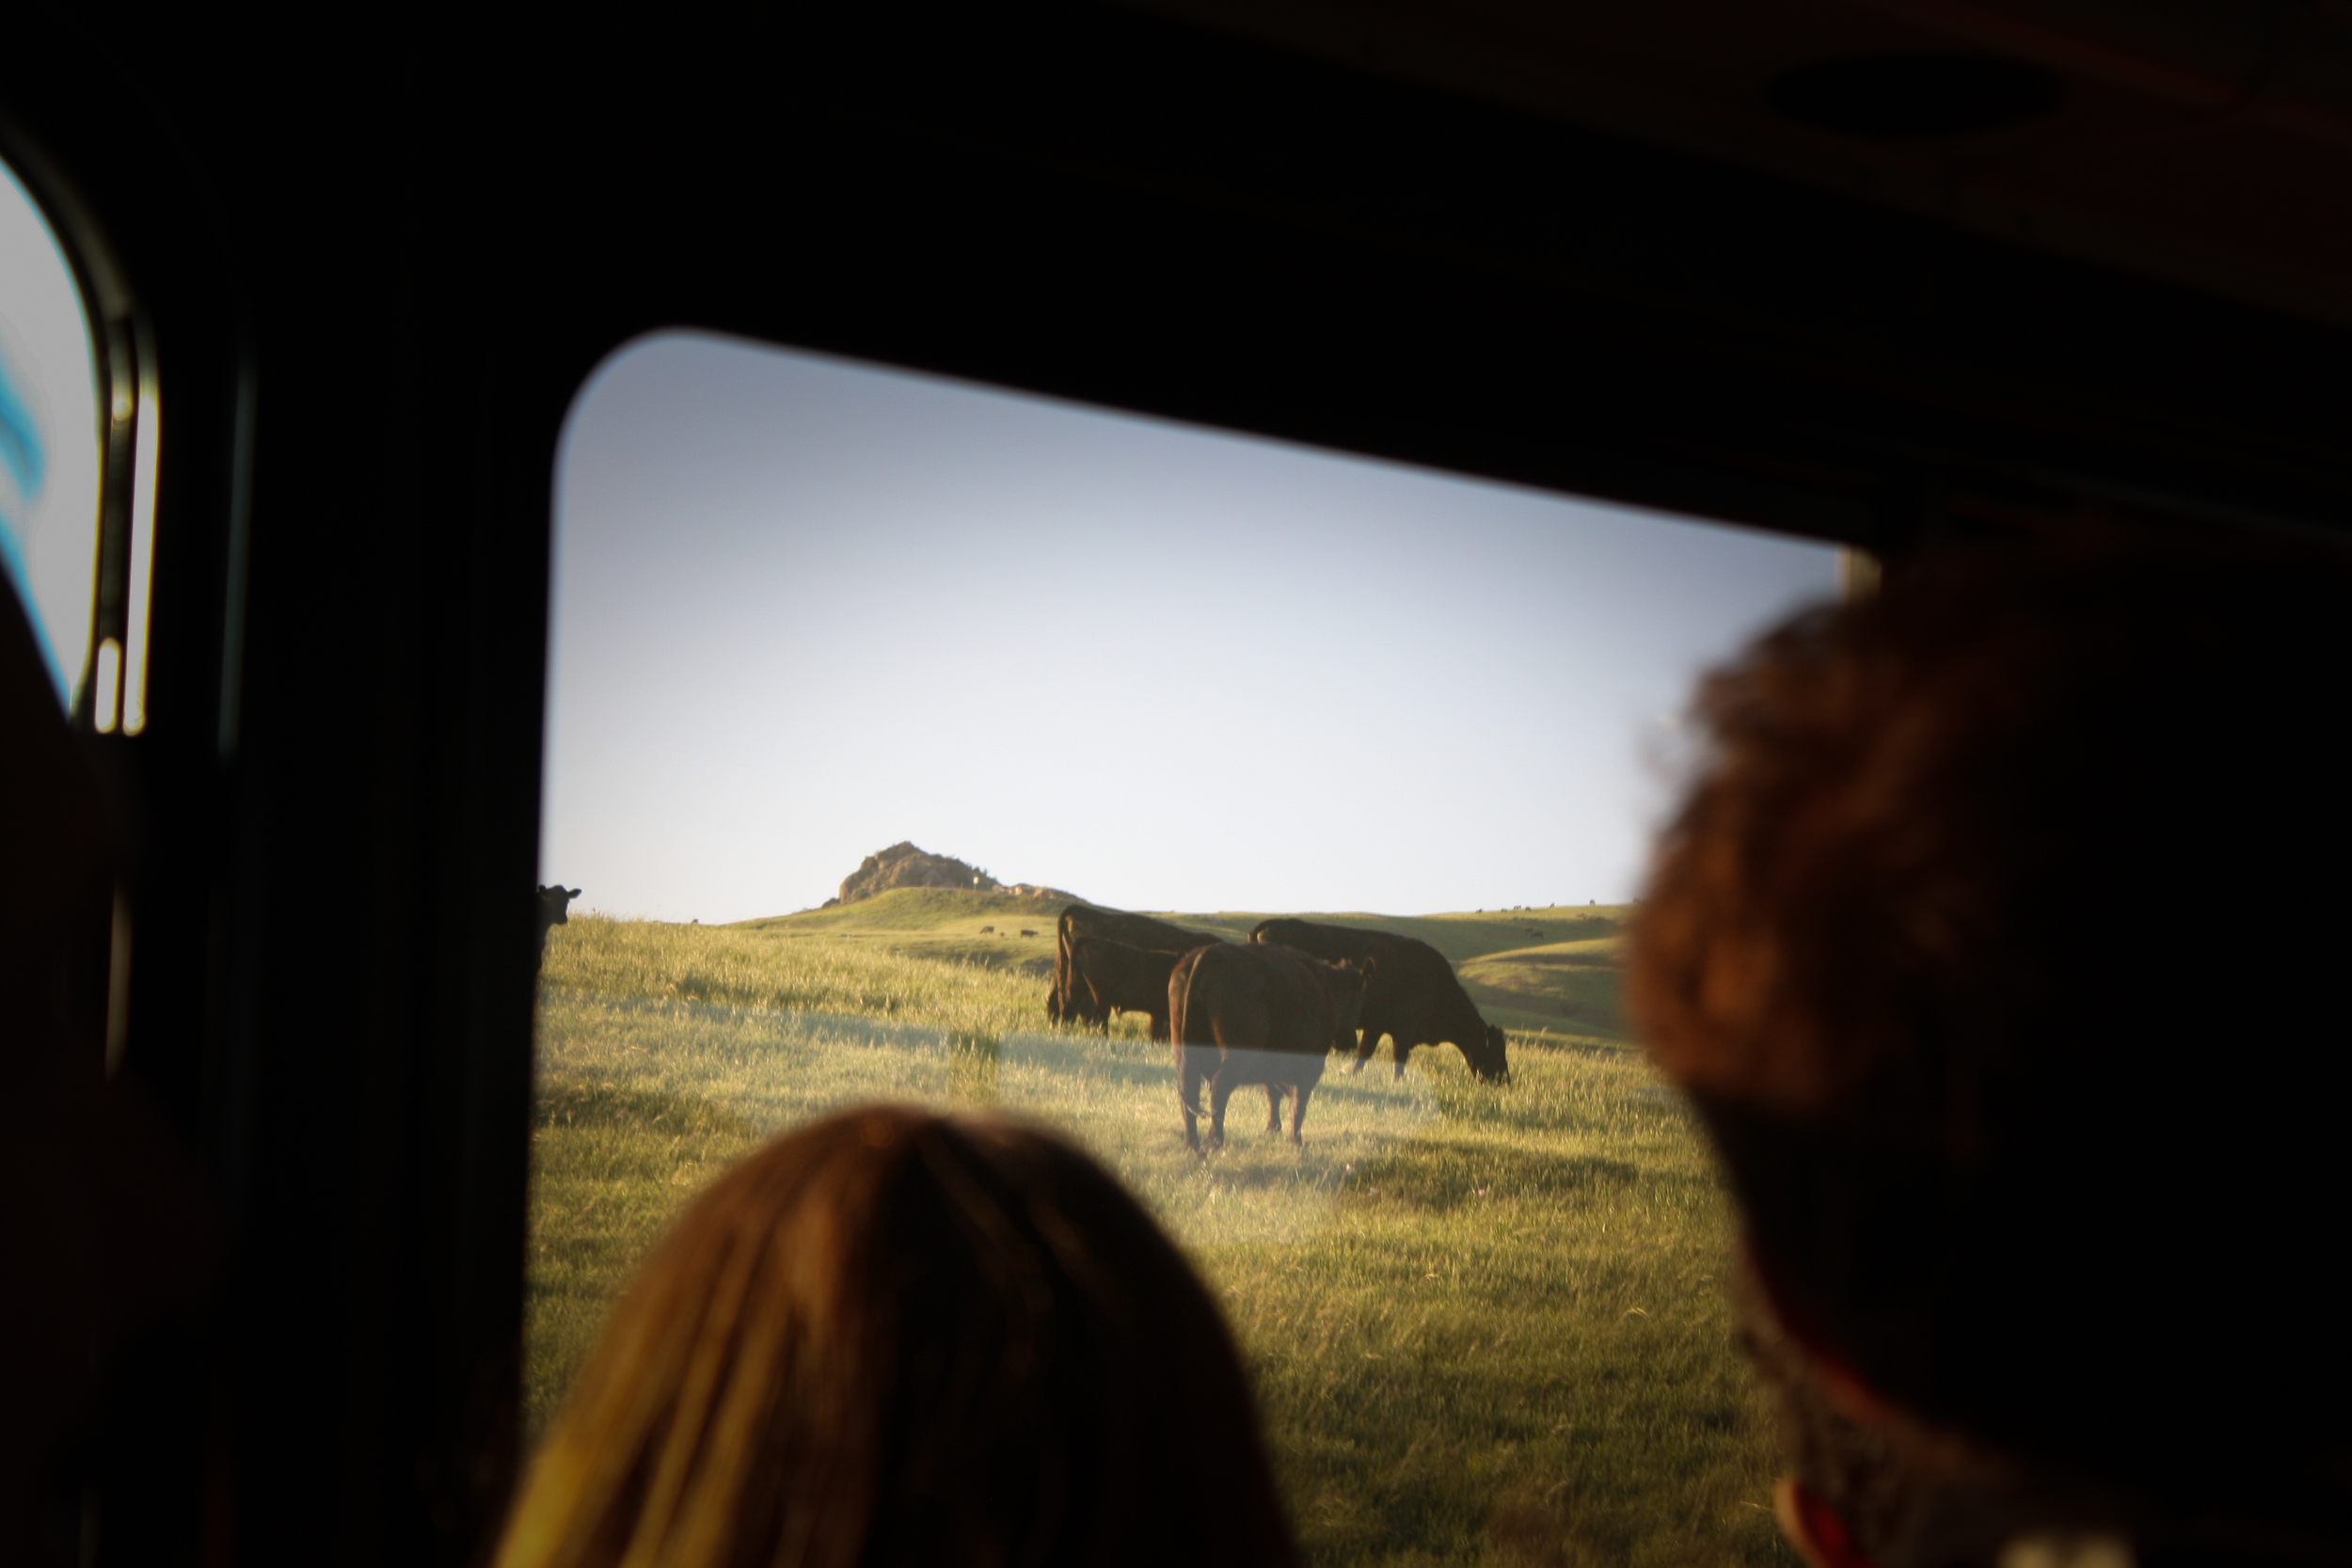 On more than one occasion, the bus had to come to a stop and honk at the Hearst Ranch cows parading across the hillside.